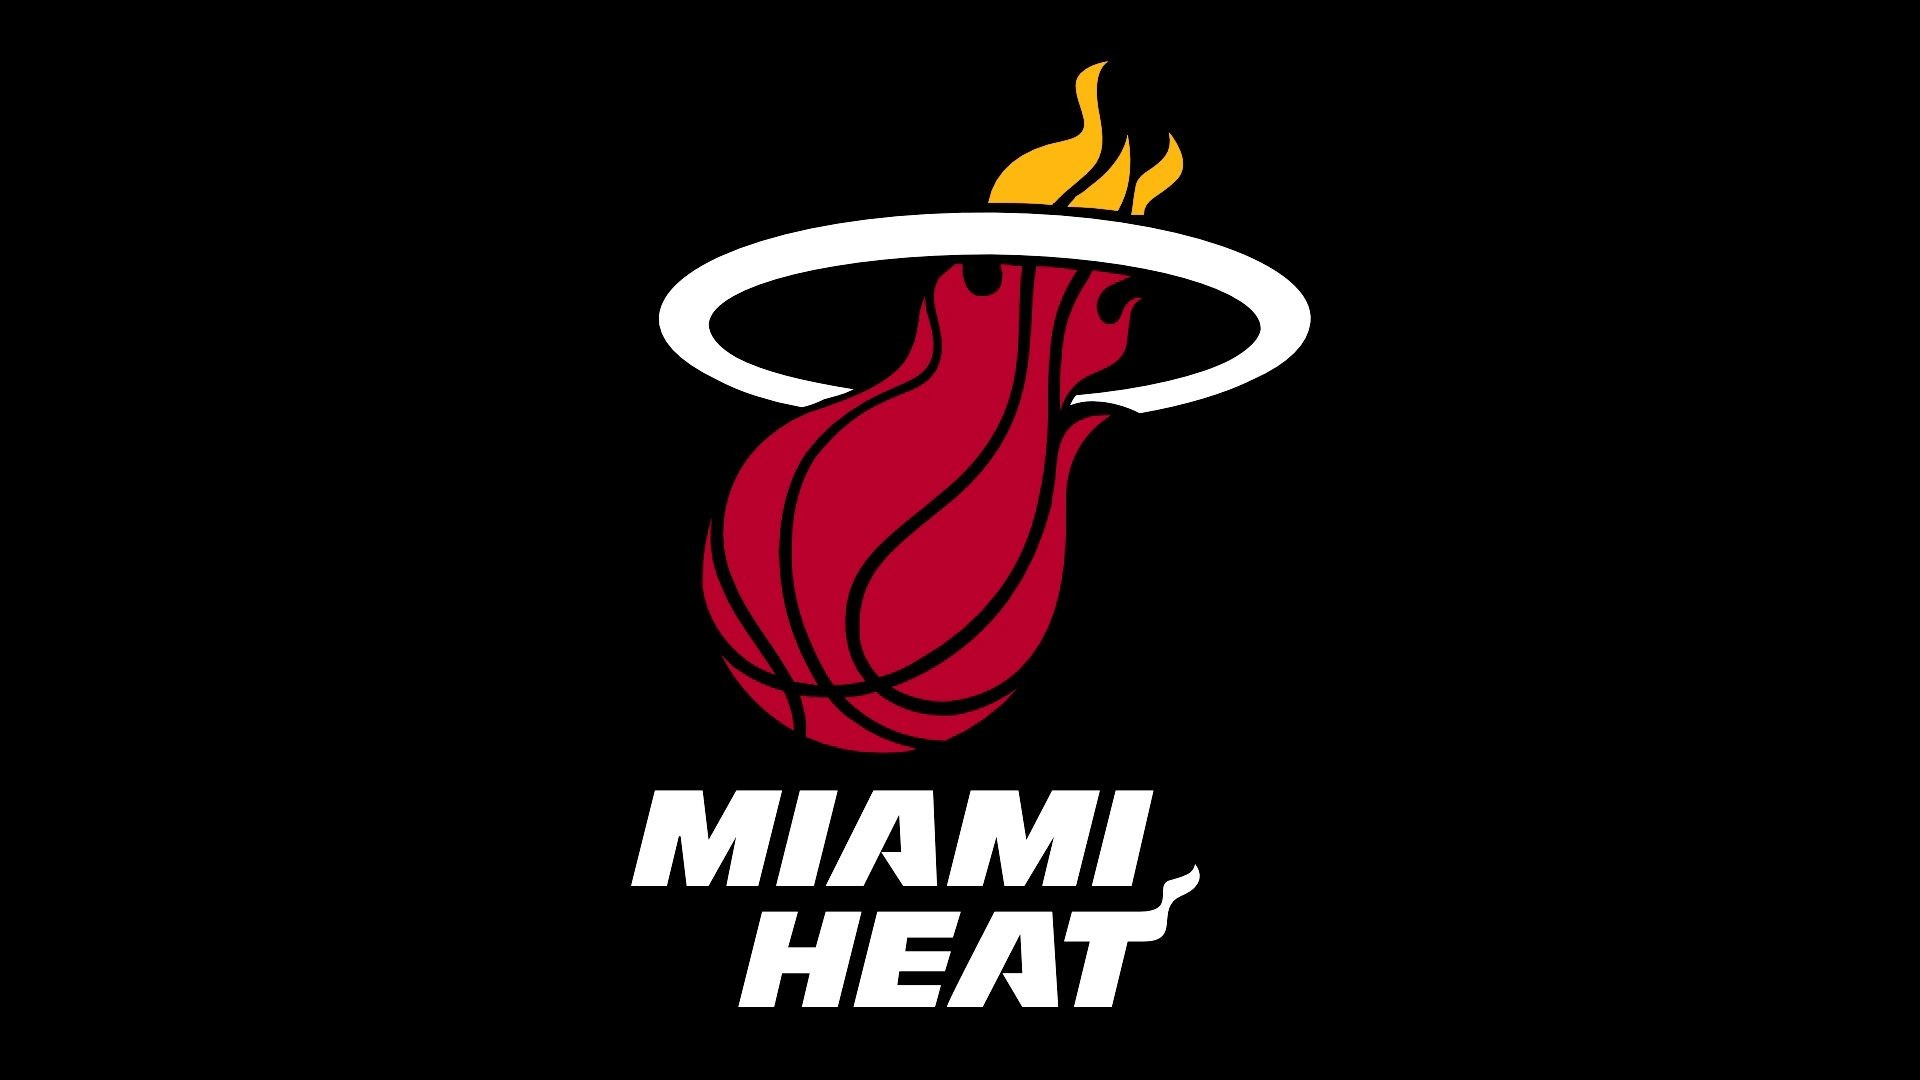 1920x1080 Miami Heat Logo Wallpaper Basketball Team